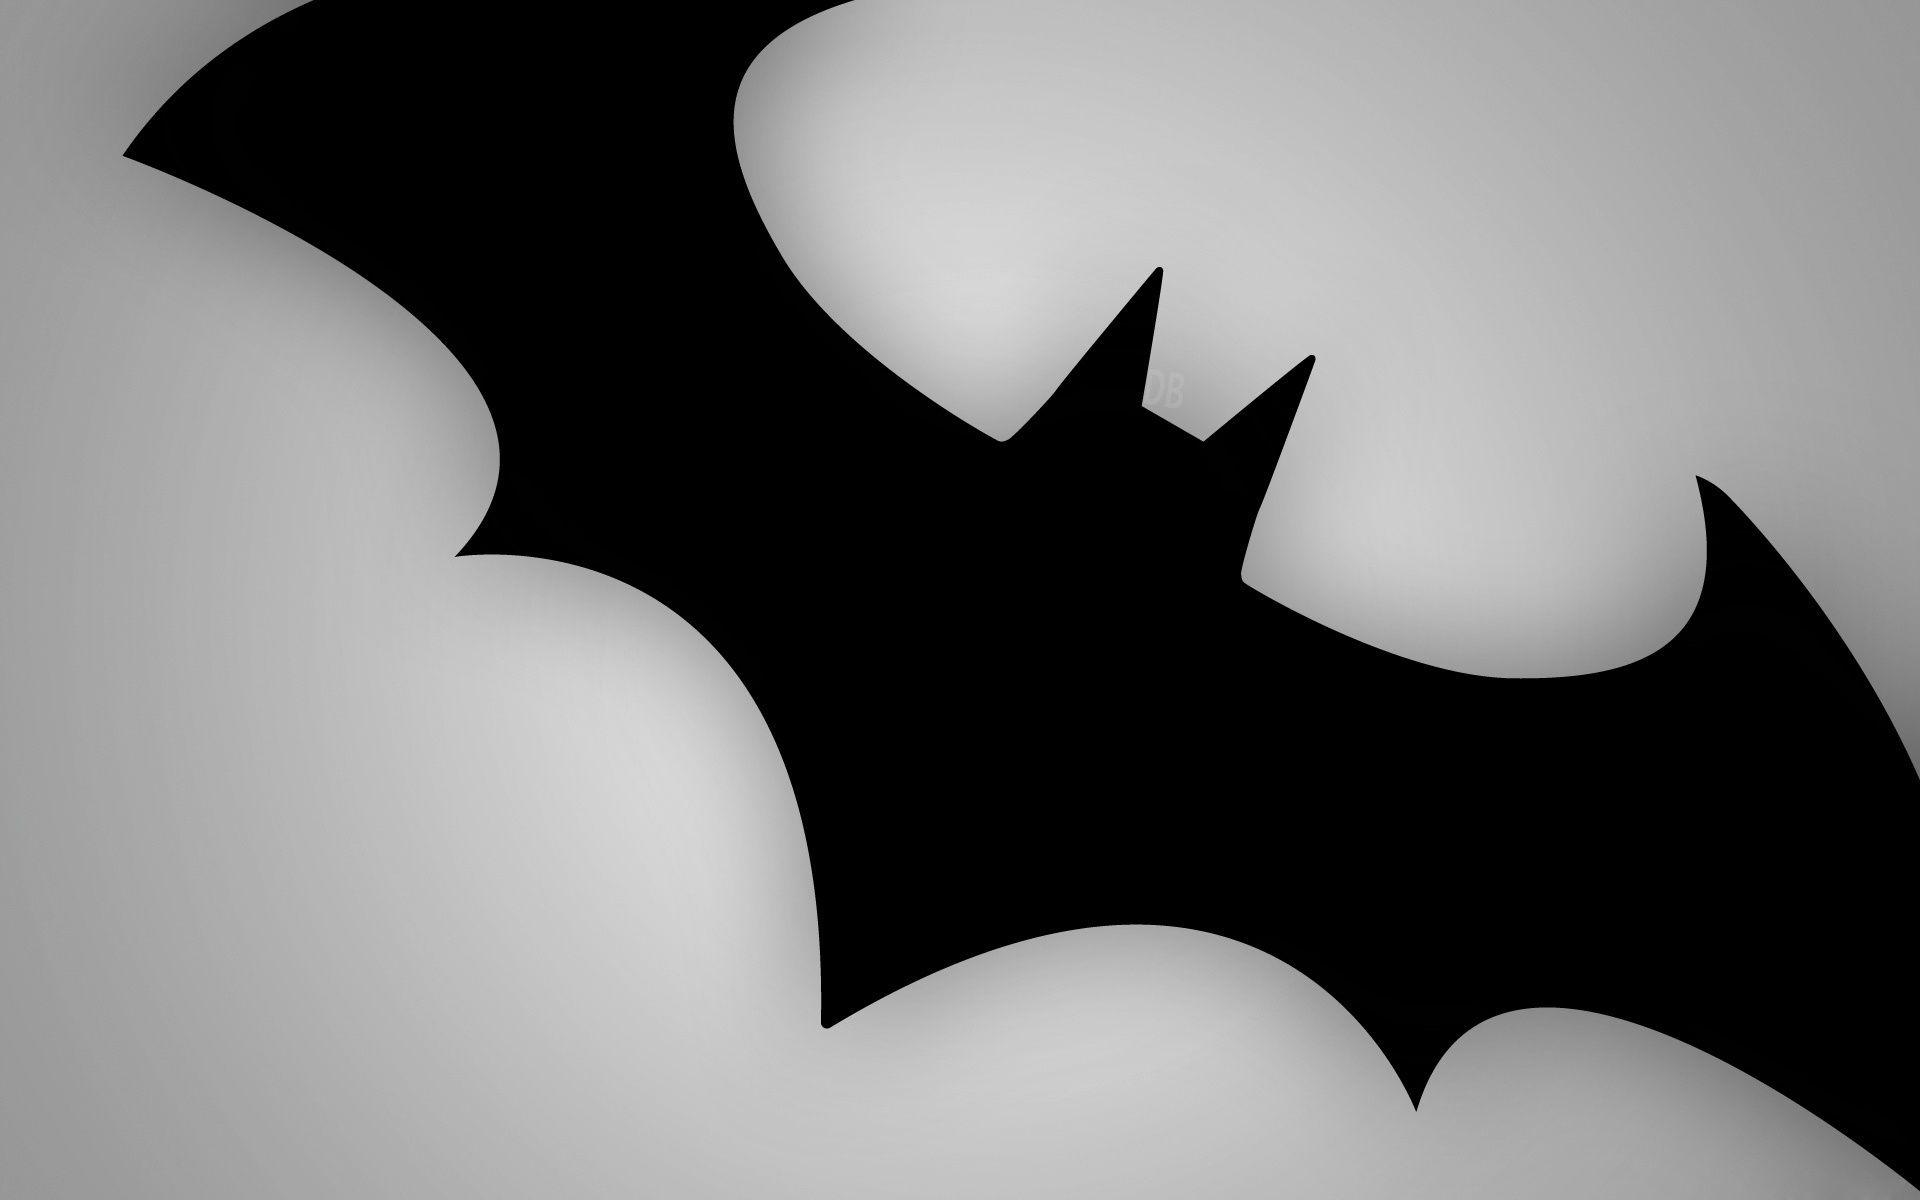 Wallpapers For > Batman Logo Wallpaper Hd Iphone